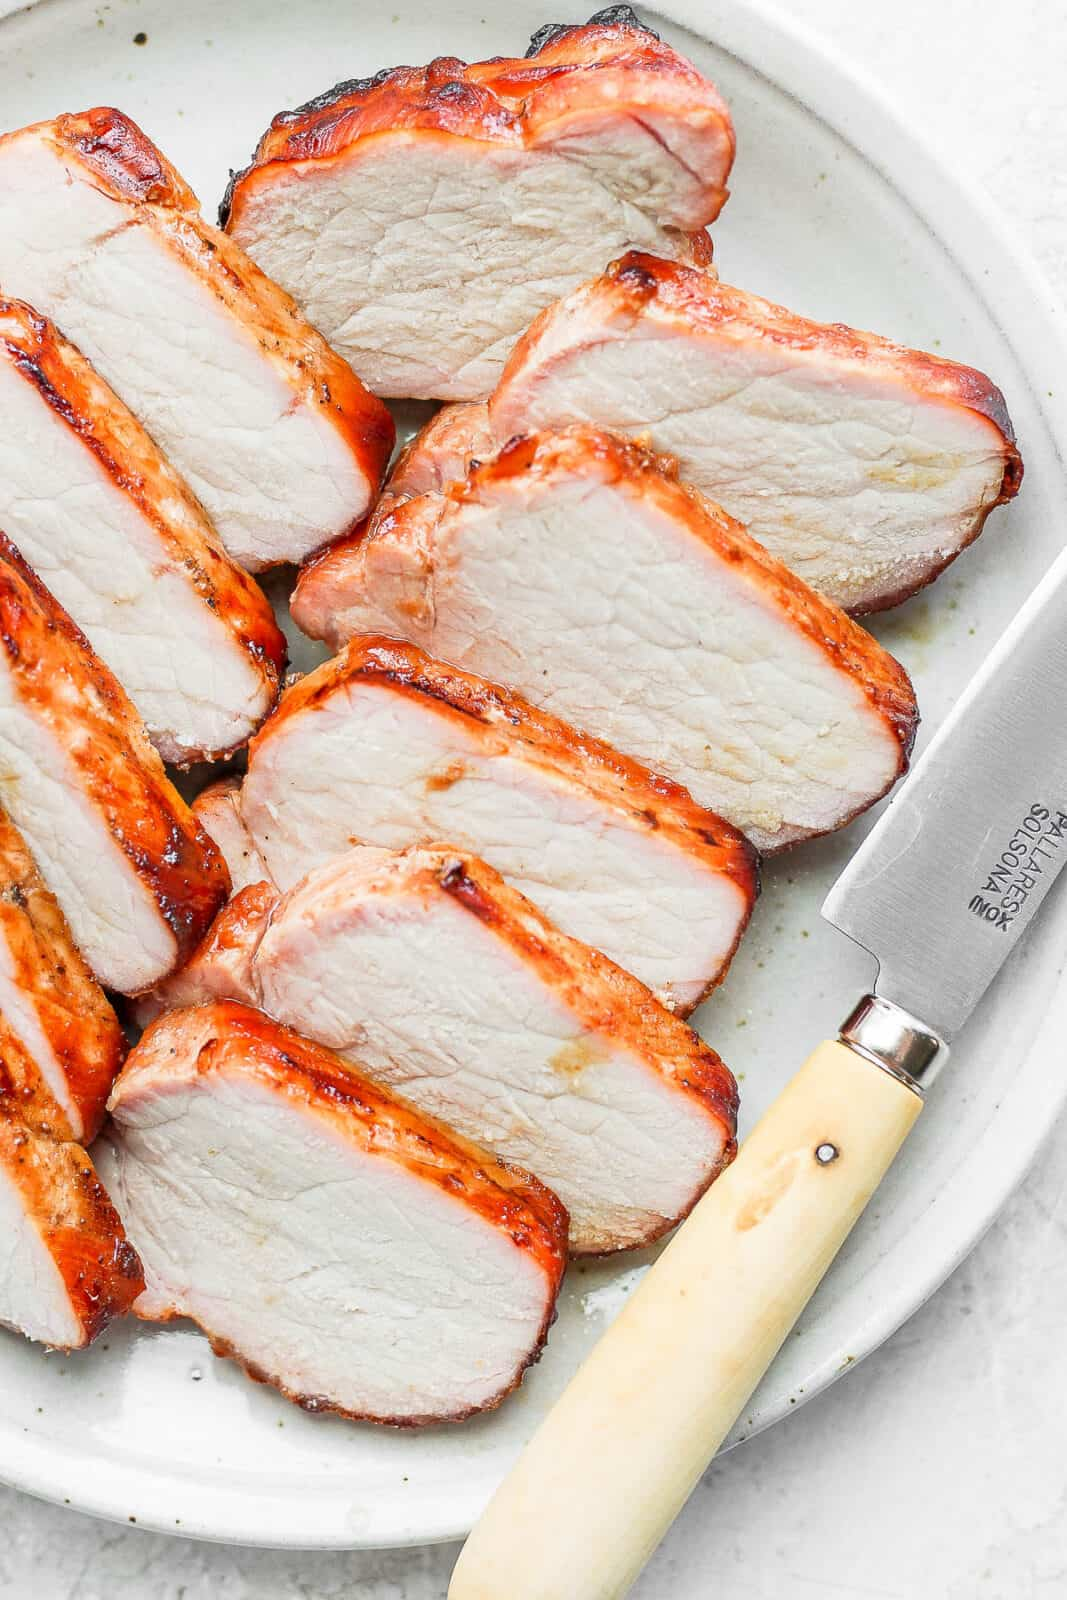 Sliced of smoked pork loin on a plate.